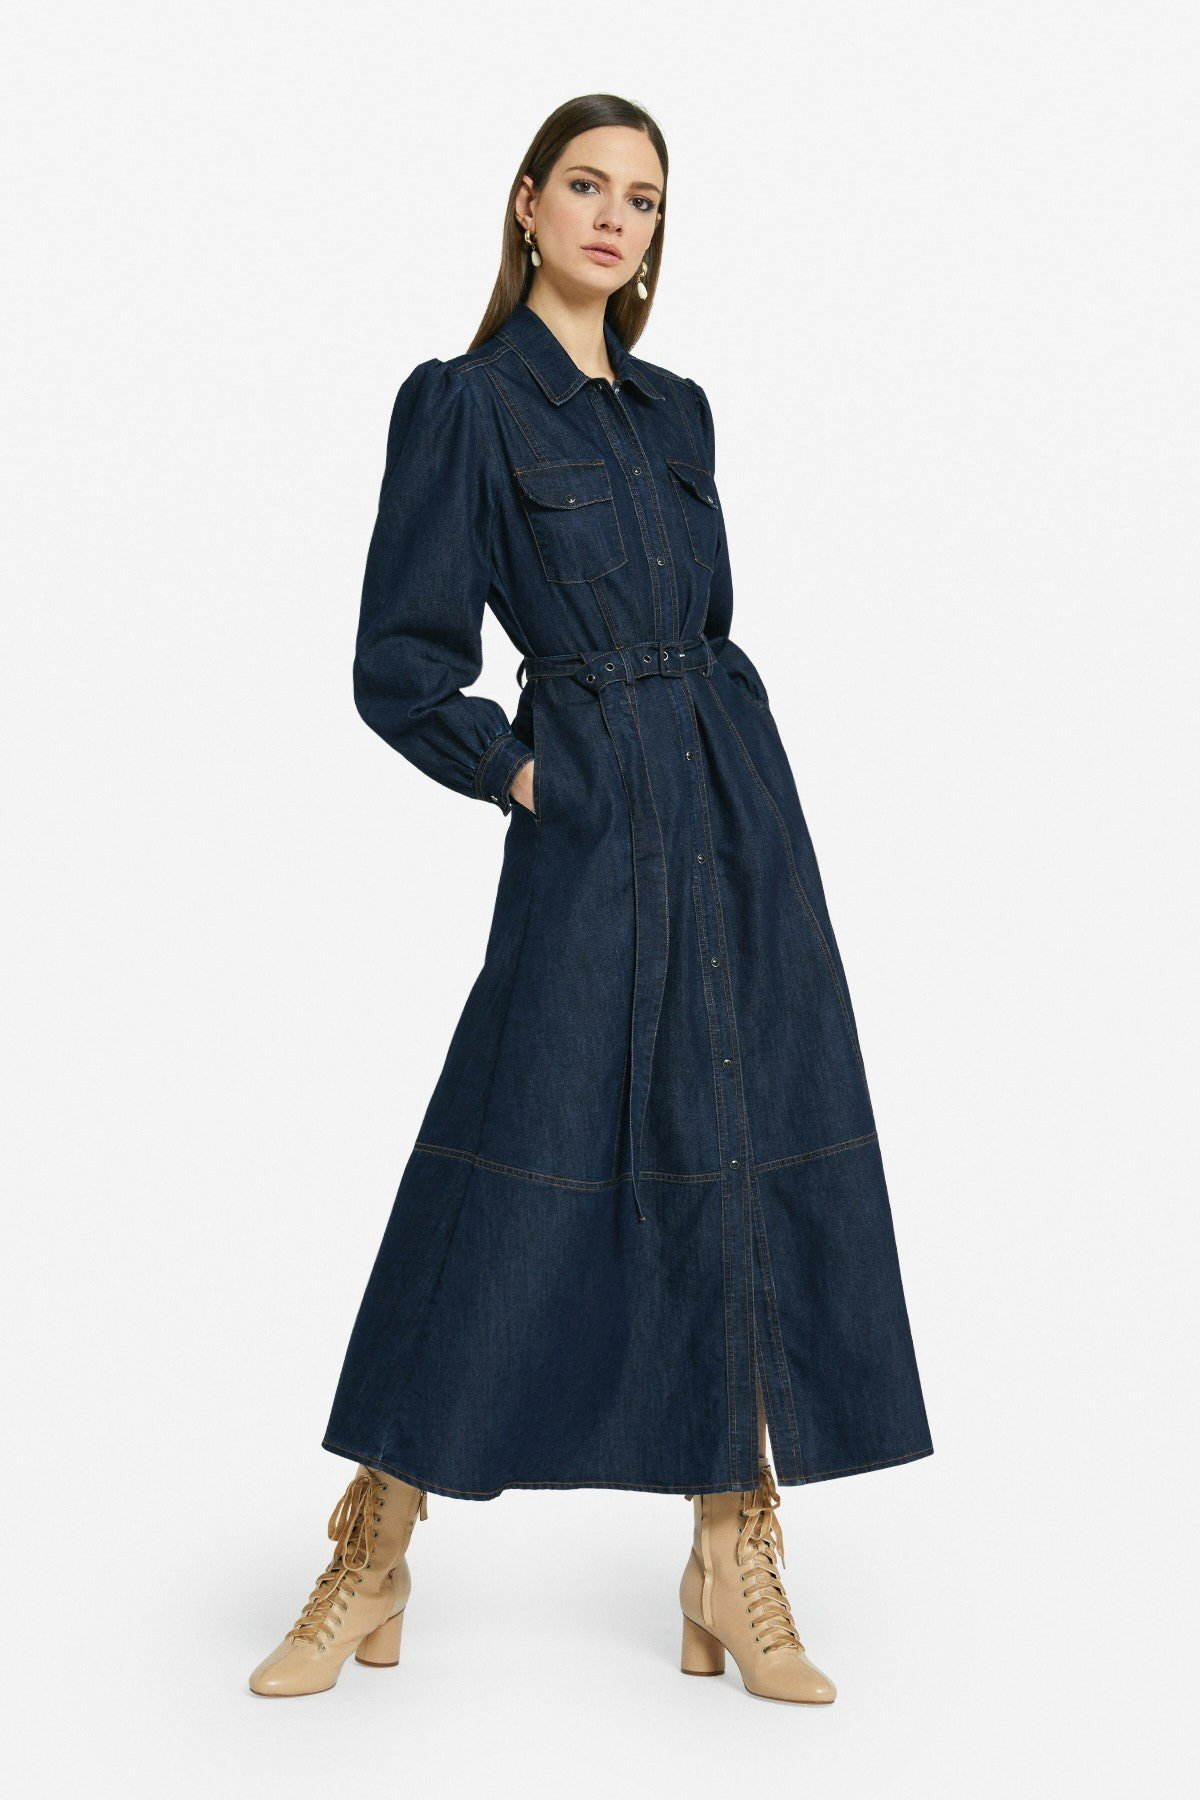 Denim chemisier long dress